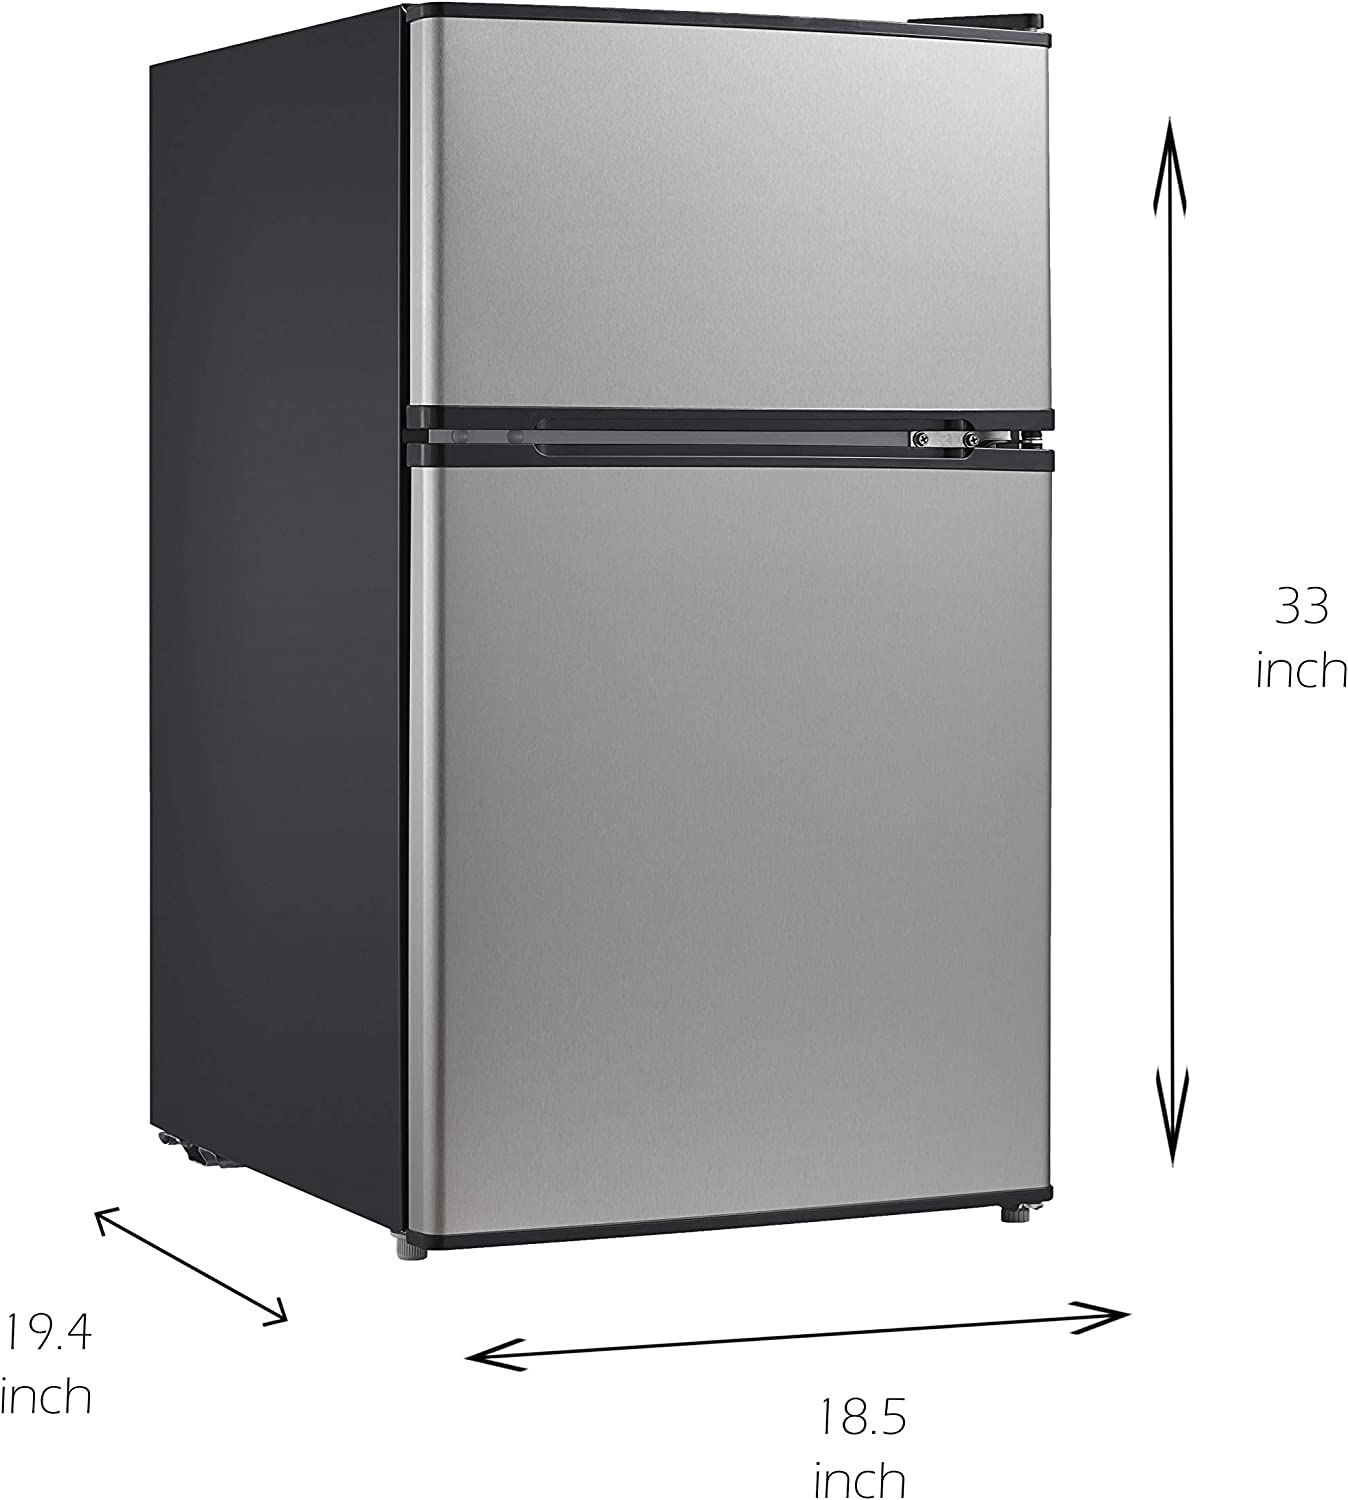 Emerson CR510WE 3.1 Cubic Foot Compact Double Door Refrigerator White